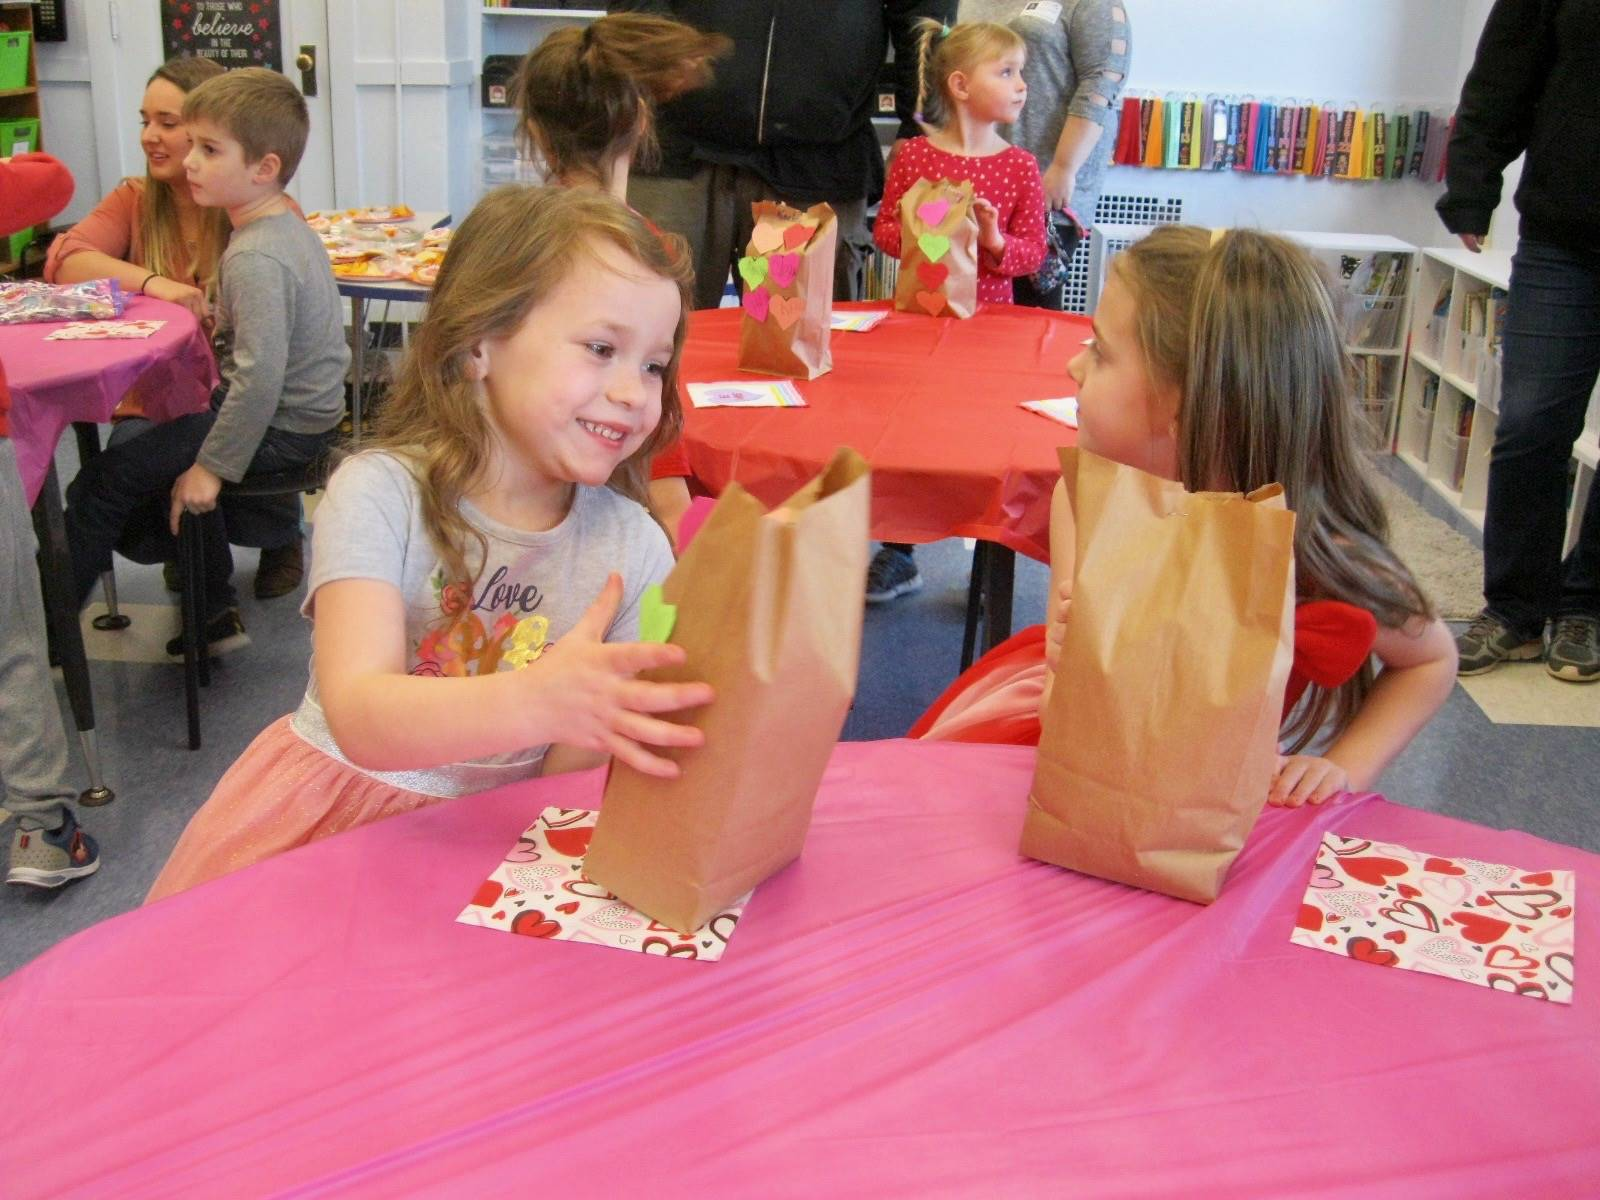 2 students open valentine cards.